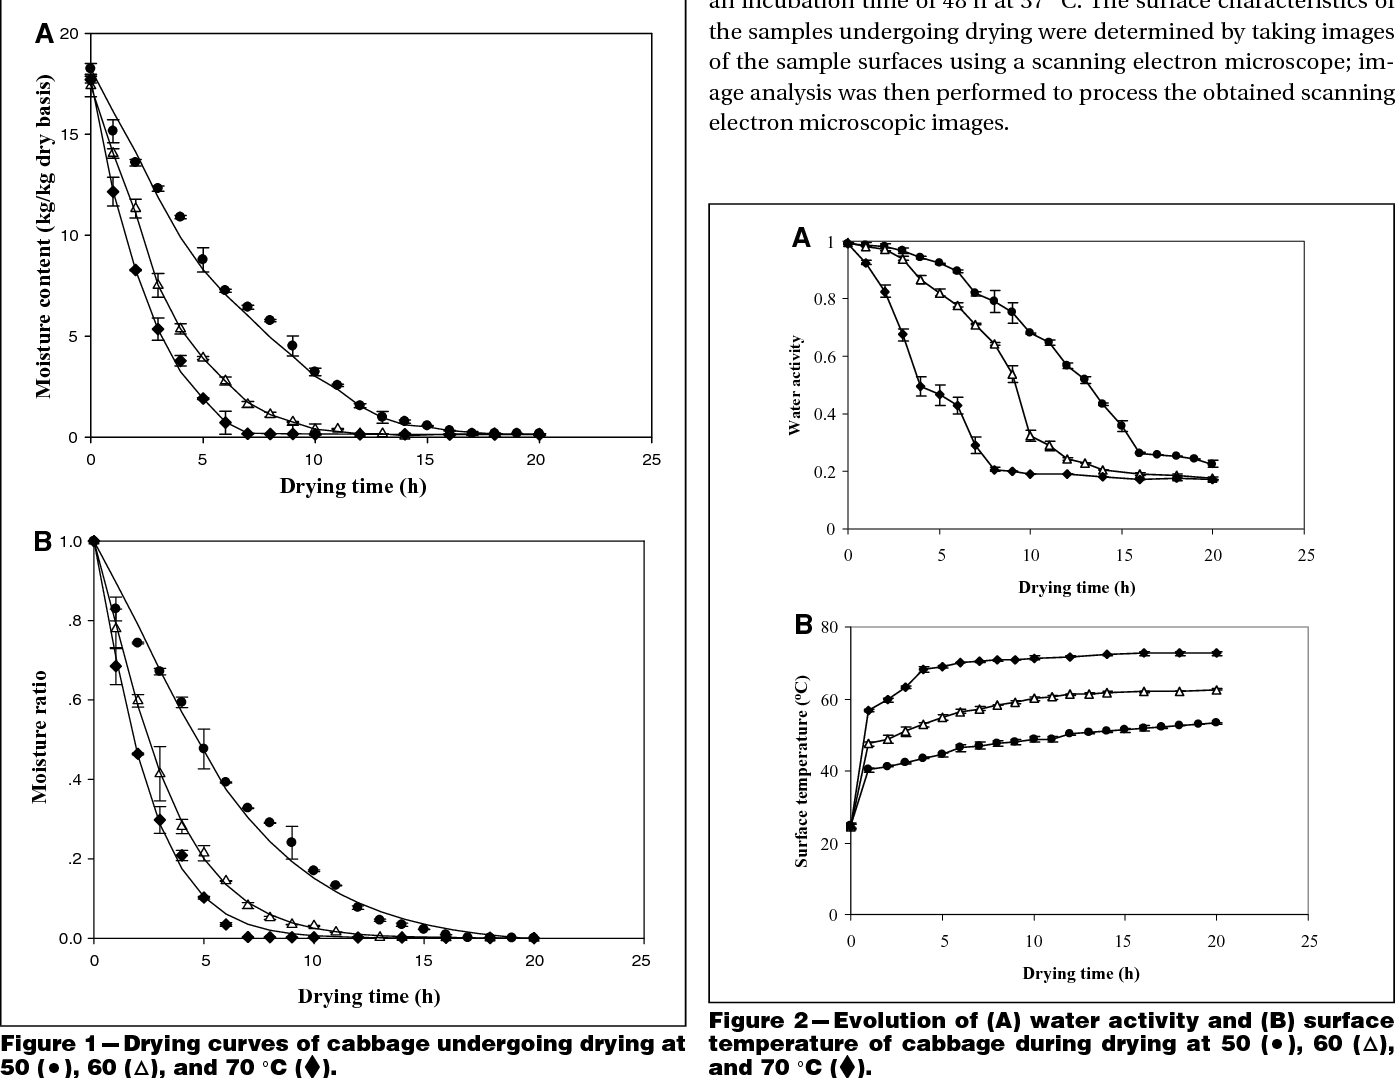 Figure 2 --- Evolution of (A) water activity and (B) surface temperature of cabbage during drying at 50 ( ), 60 ( ), and 70 ◦C ( ).